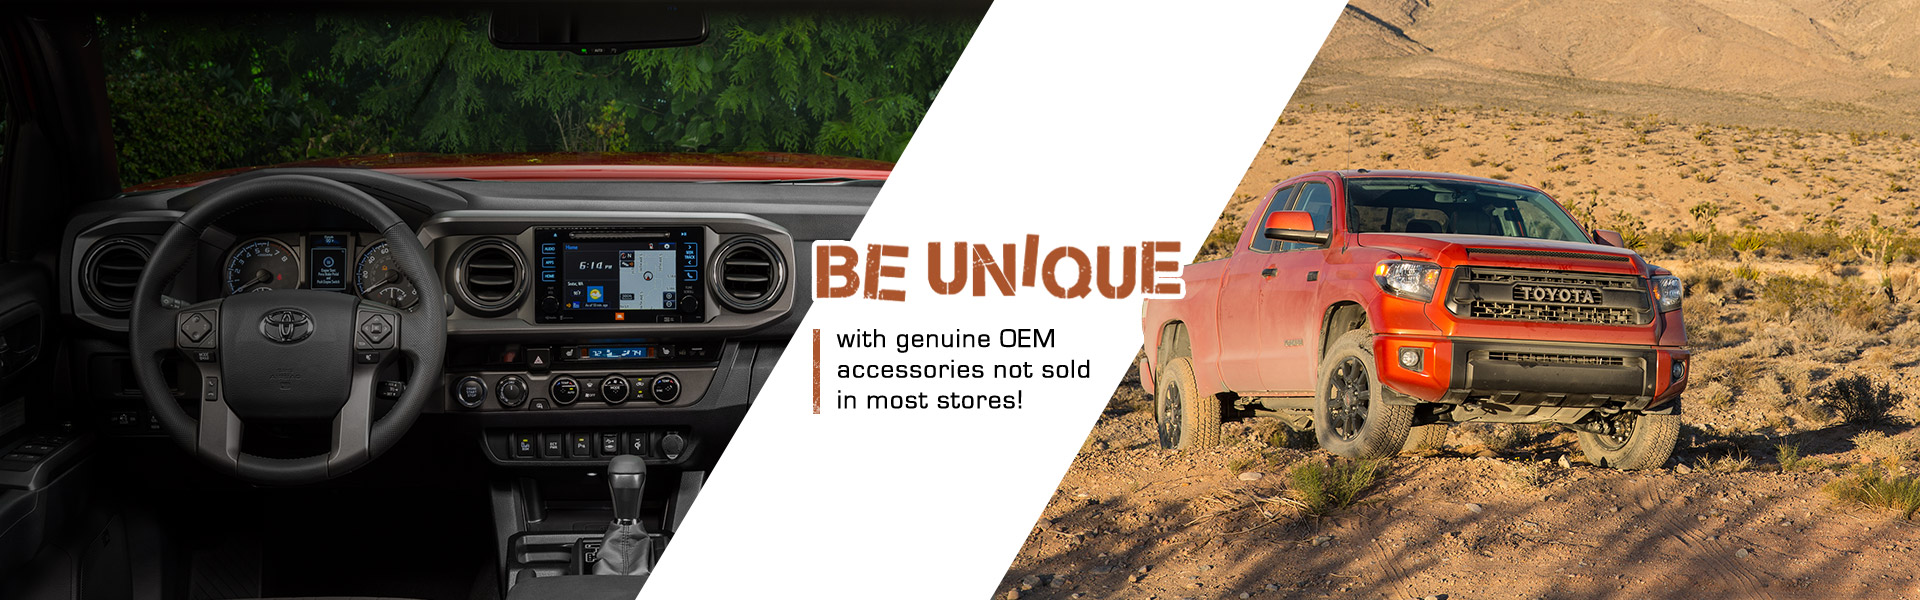 Be unique. Toyota OEM accessories